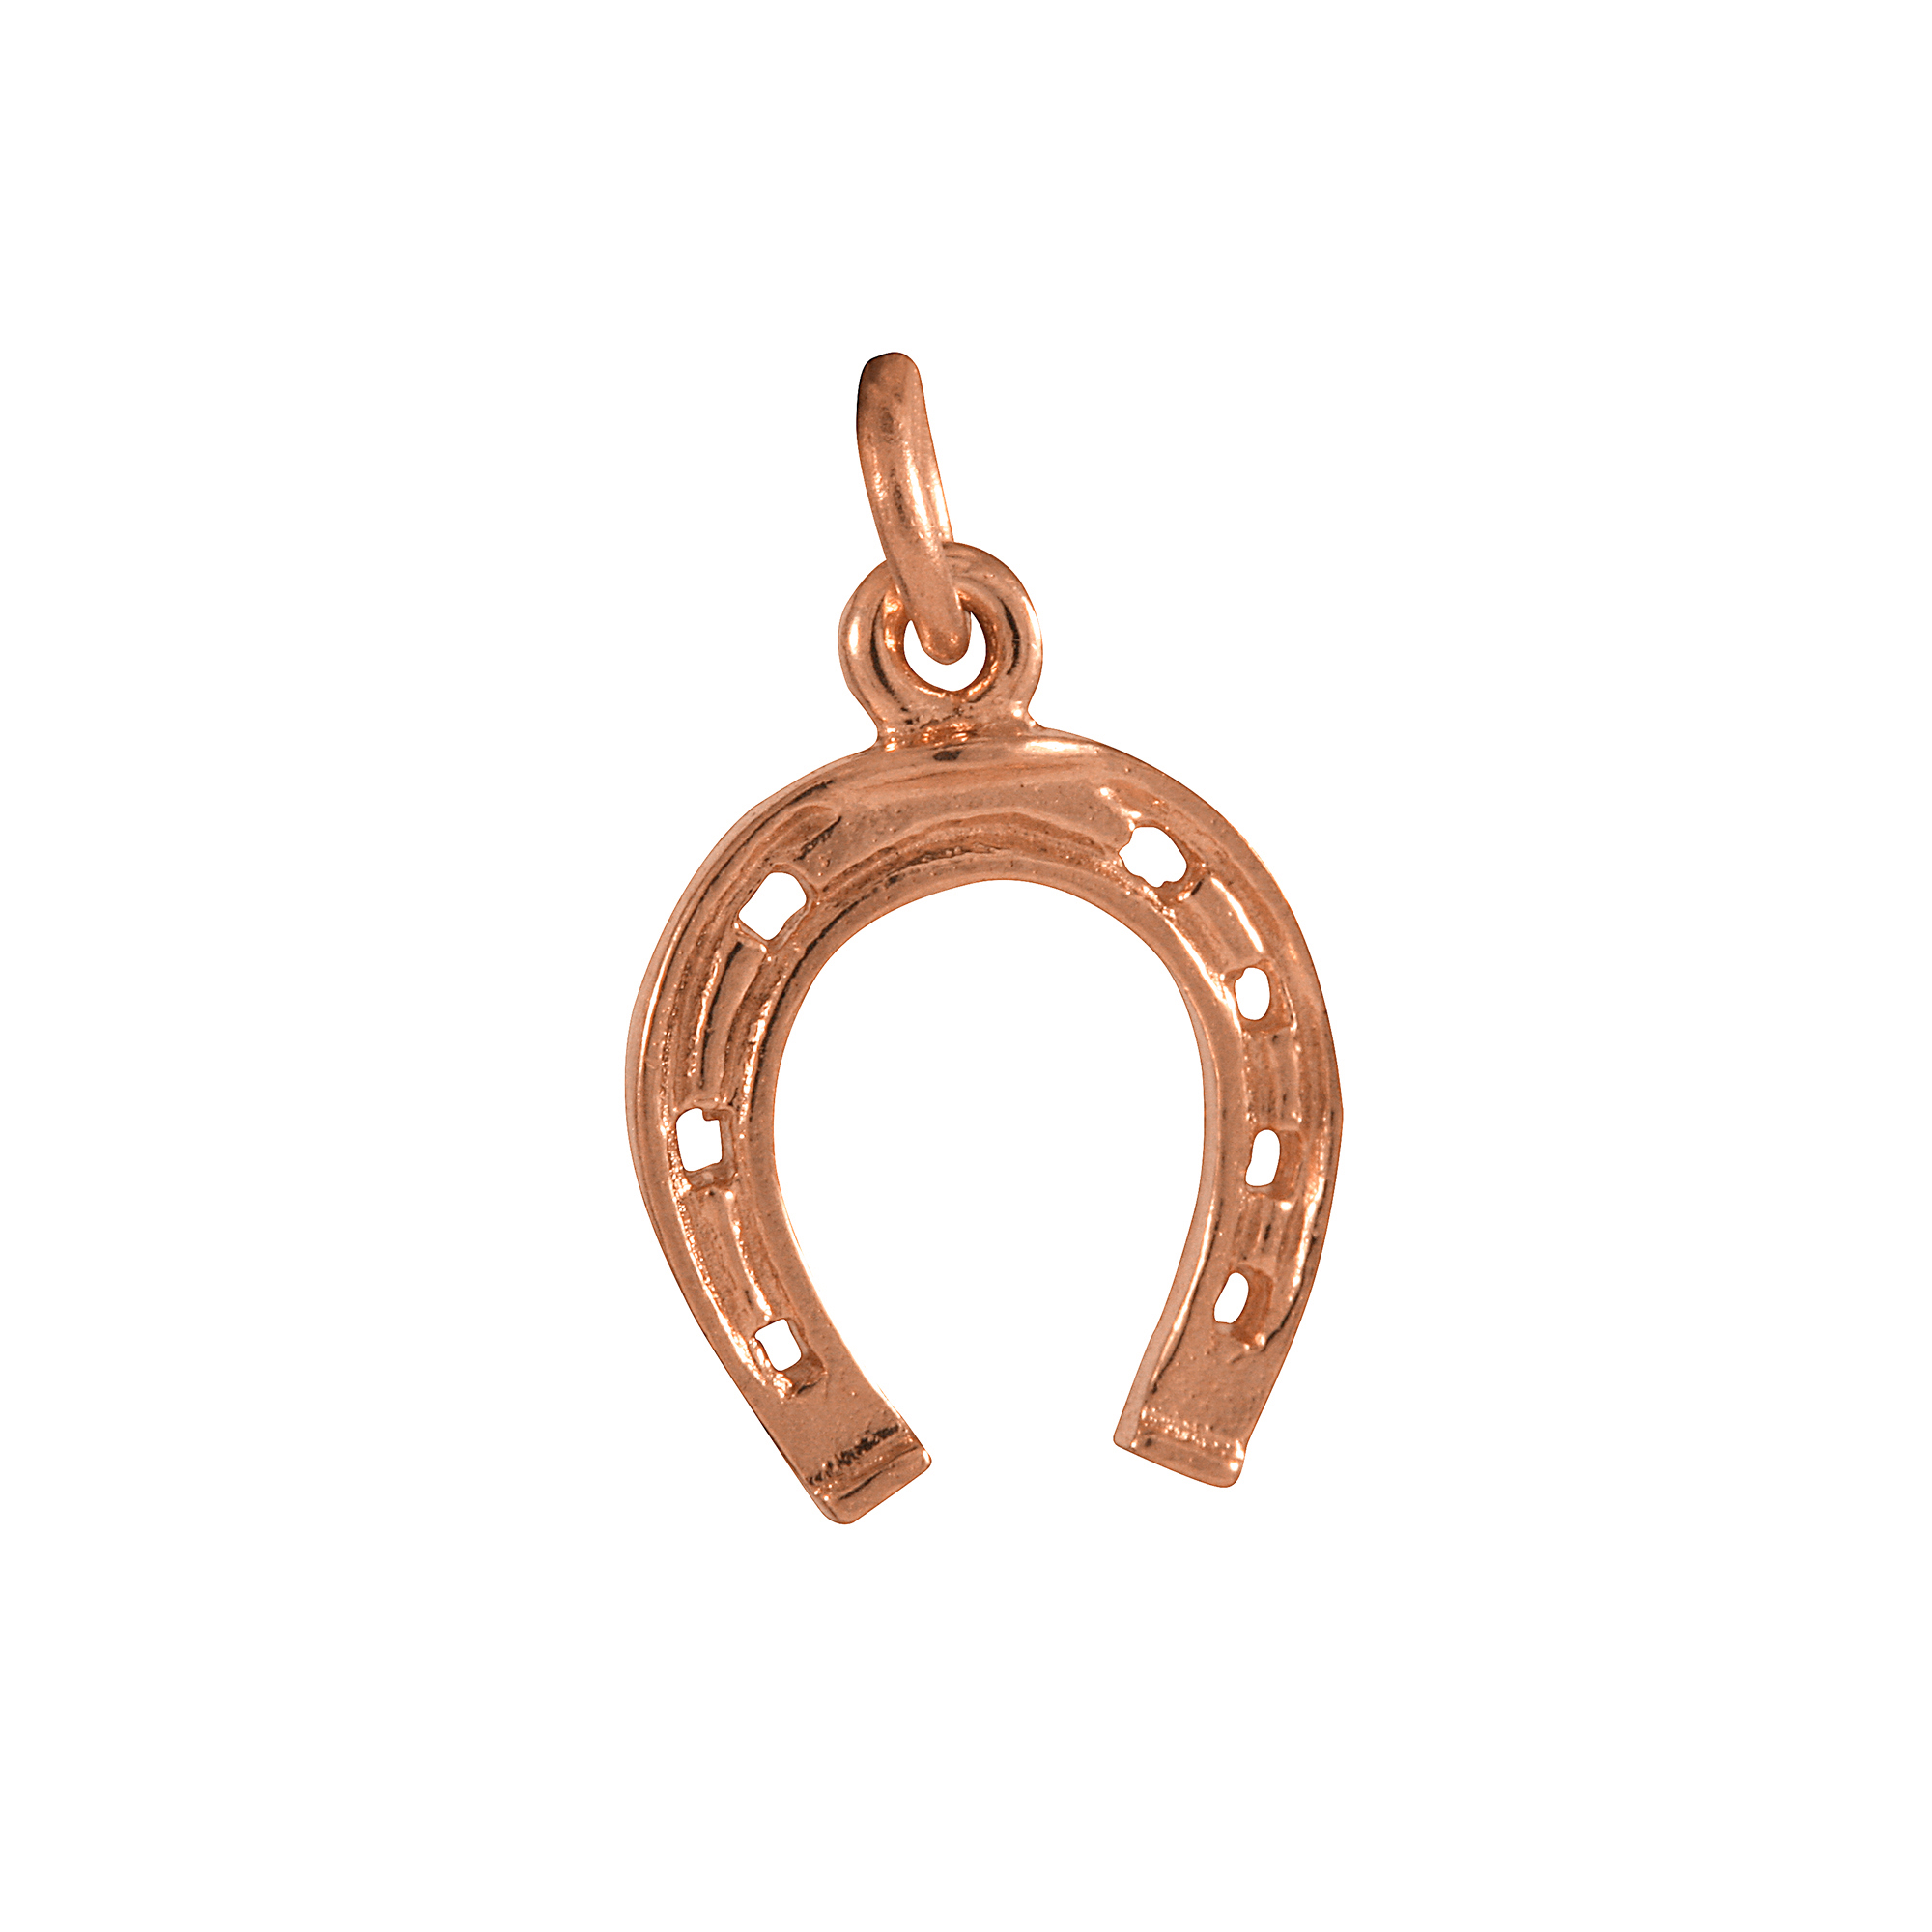 An image of 9ct Rose Gold Horseshoe Charm